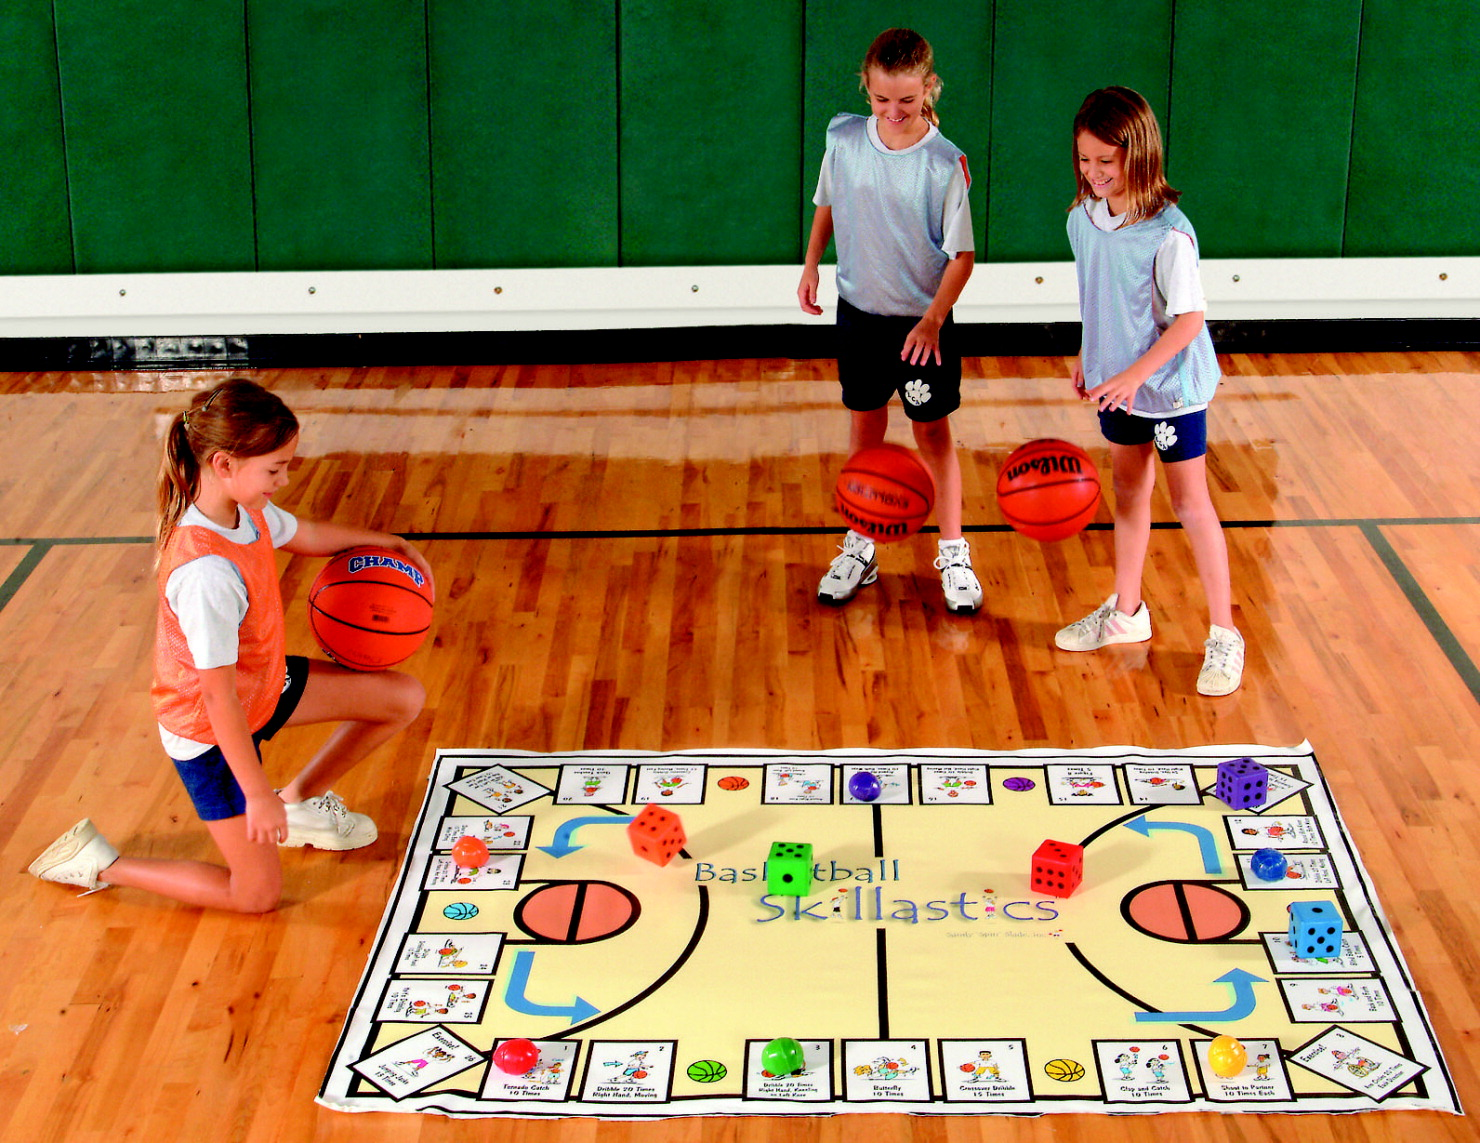 Skillastics Basketball Game for Grades 2 to 8